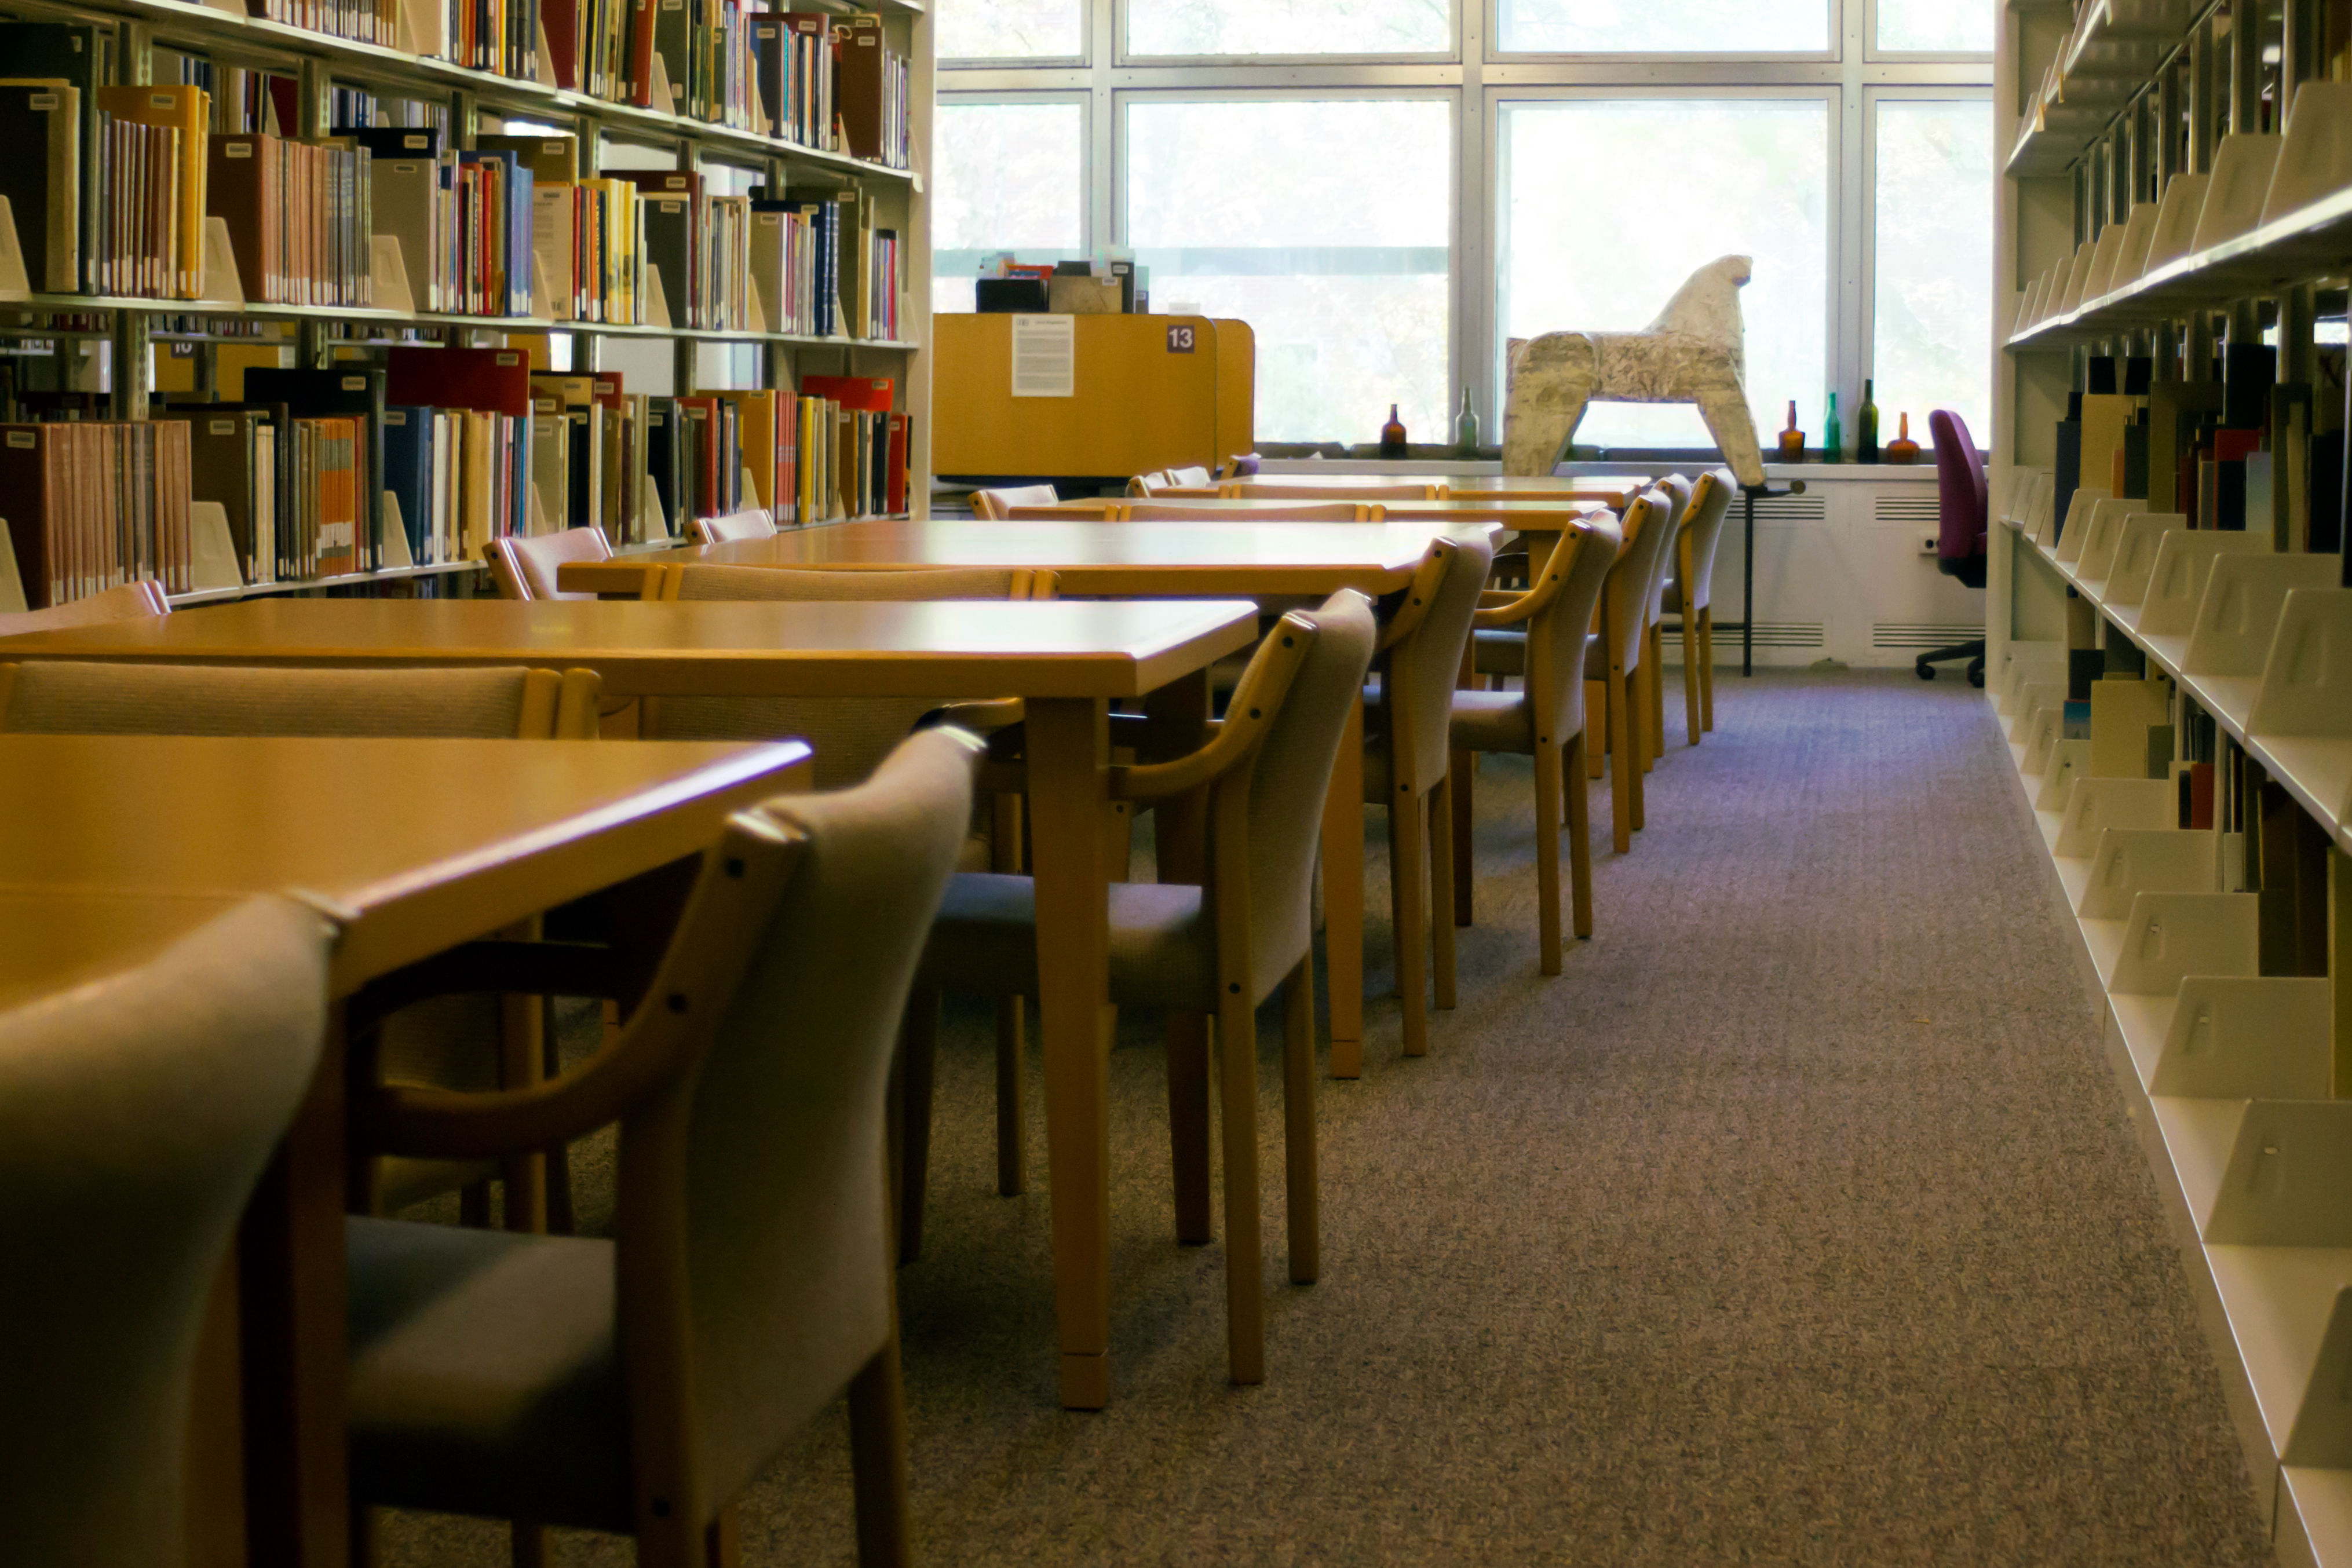 Seating area in the art library